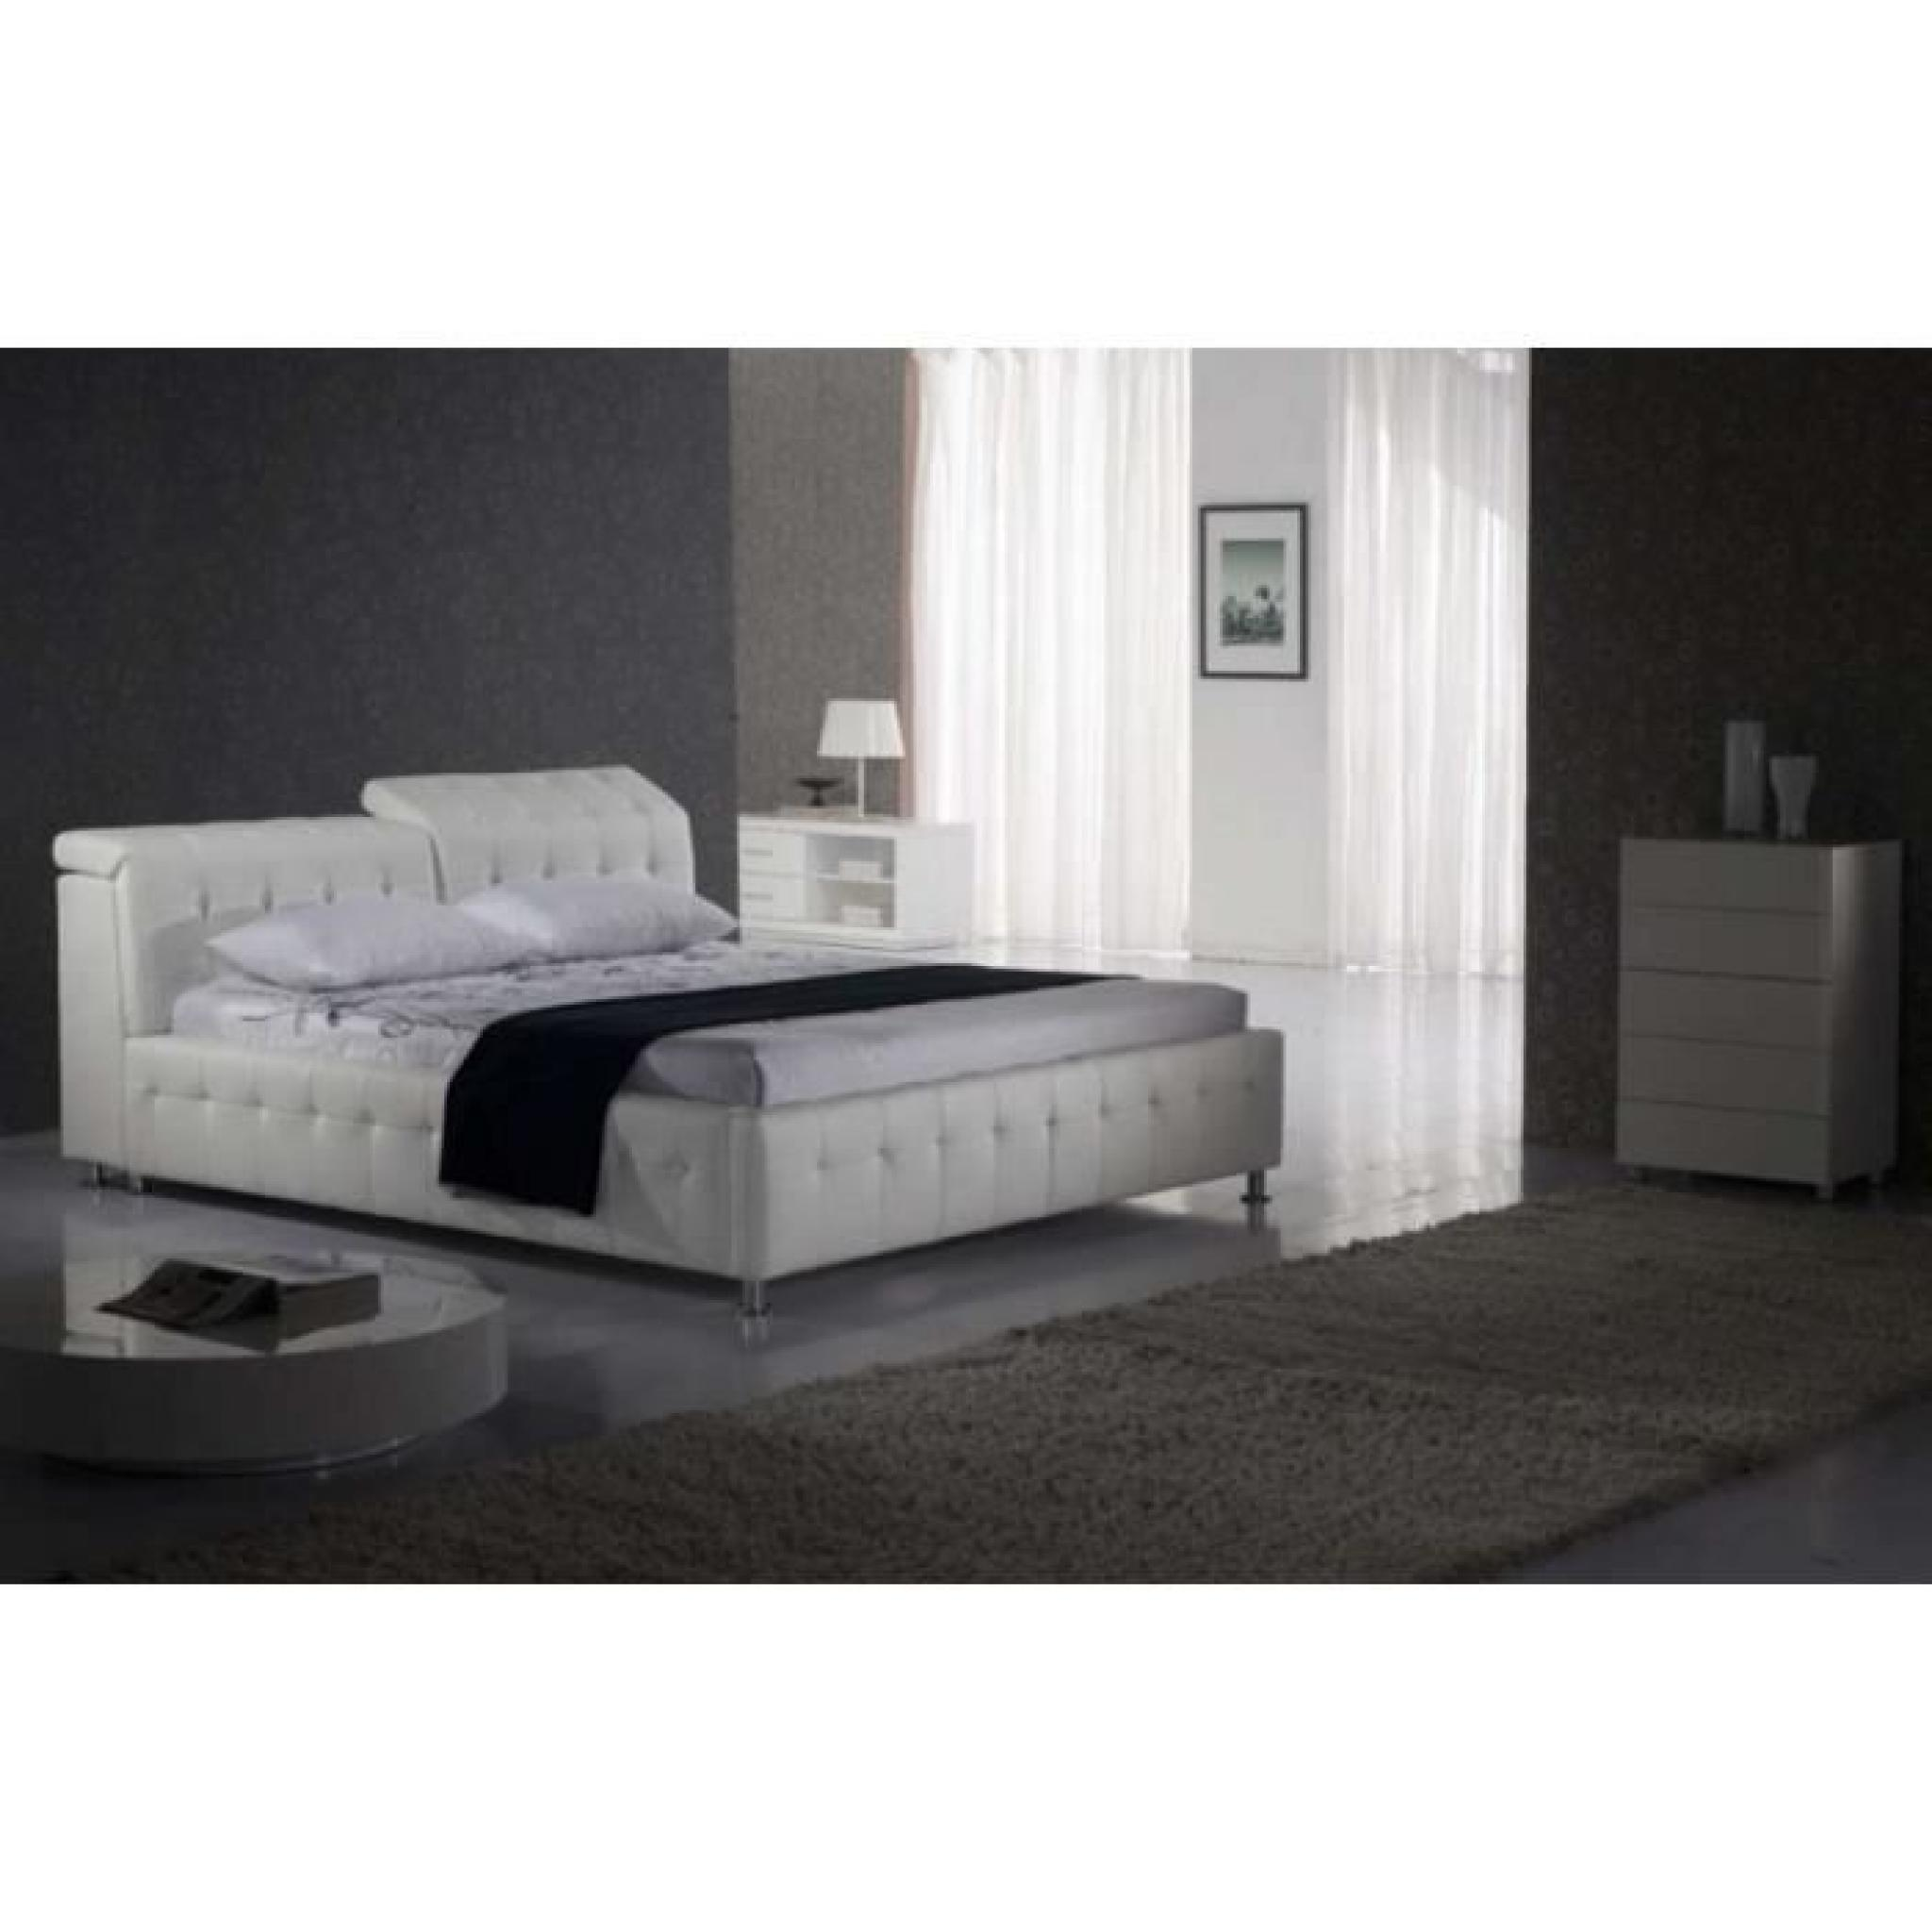 justhome theatro plus blanc lit rembourr en cuir cologique taille 140 x 200 cm achat vente. Black Bedroom Furniture Sets. Home Design Ideas